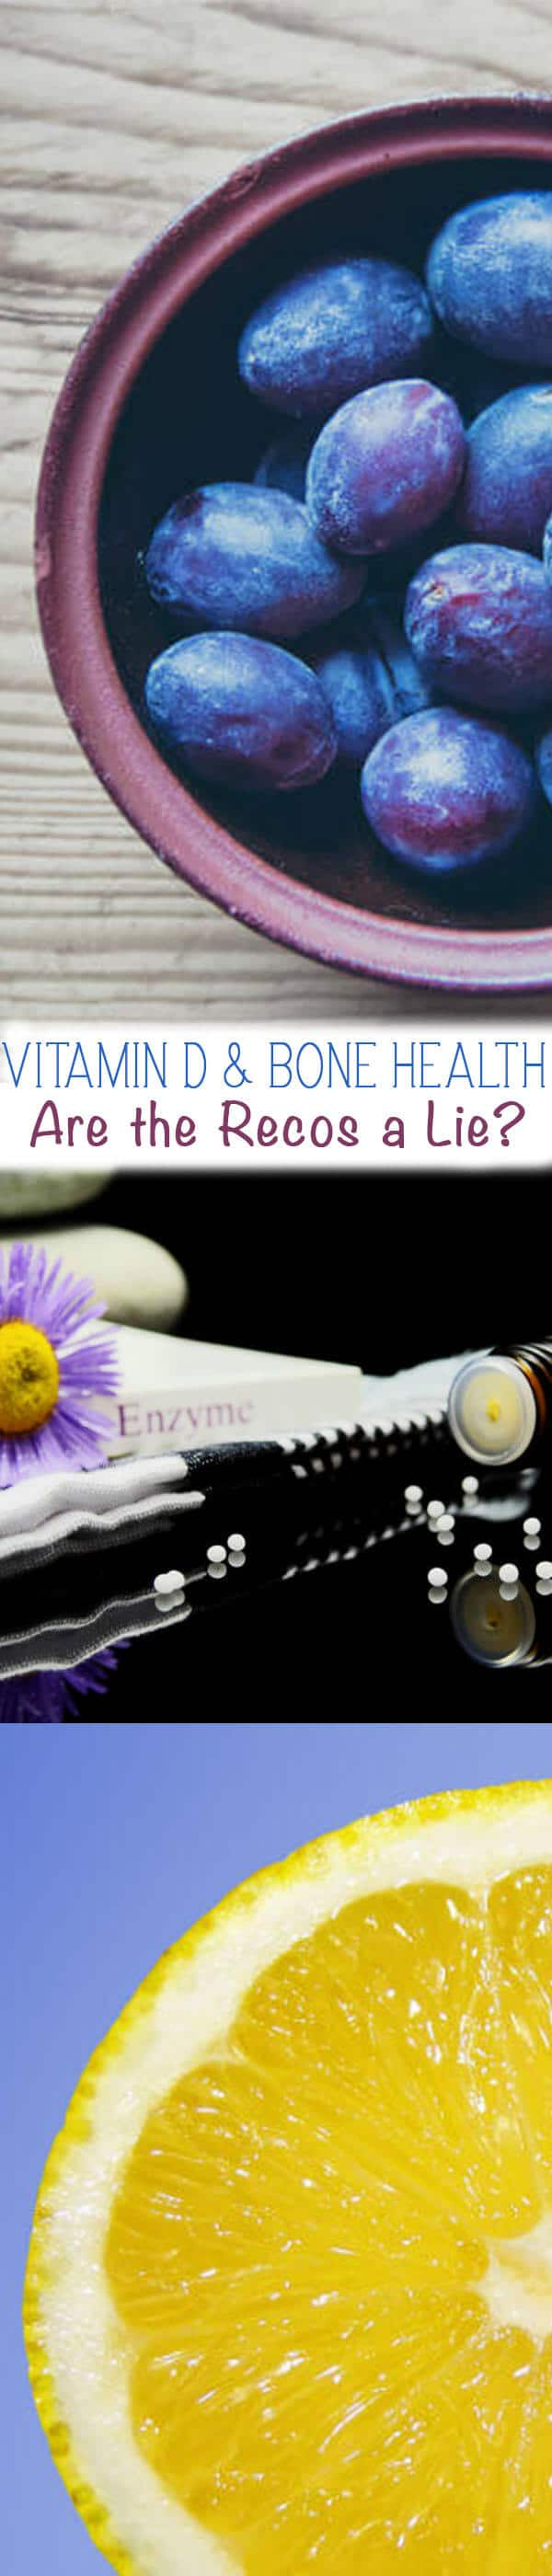 How Much Vitamin D do We Need? In this post, we share the current research on Vitamin D and bone health including info on where the controversial vitamin D recommendations come from.